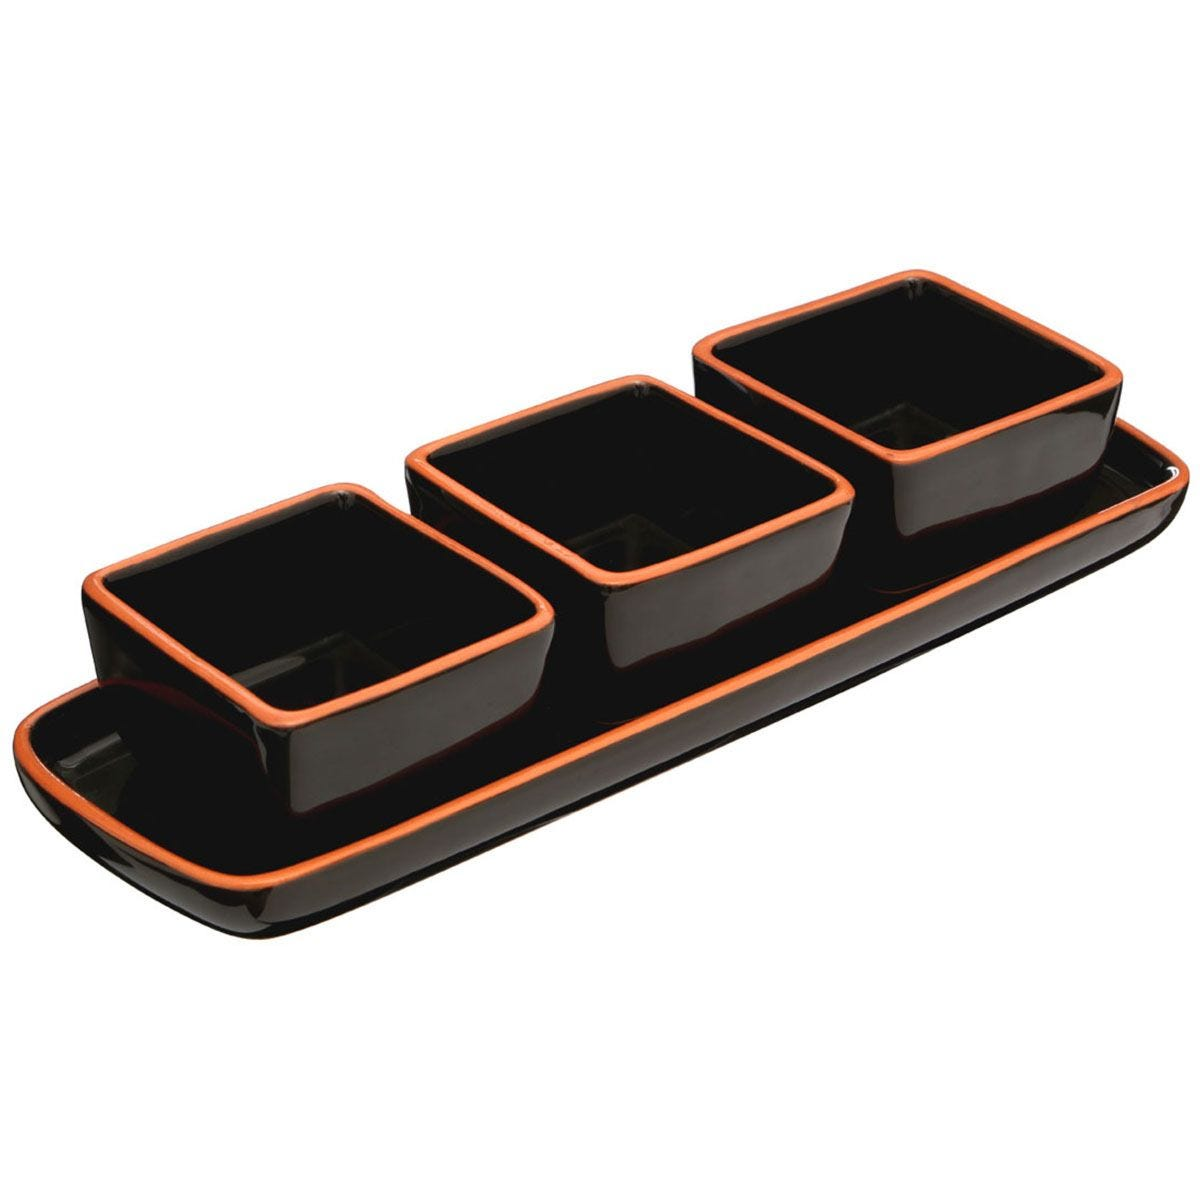 Premier Housewares Black Calisto Square Dishes On Tray - Set of 3